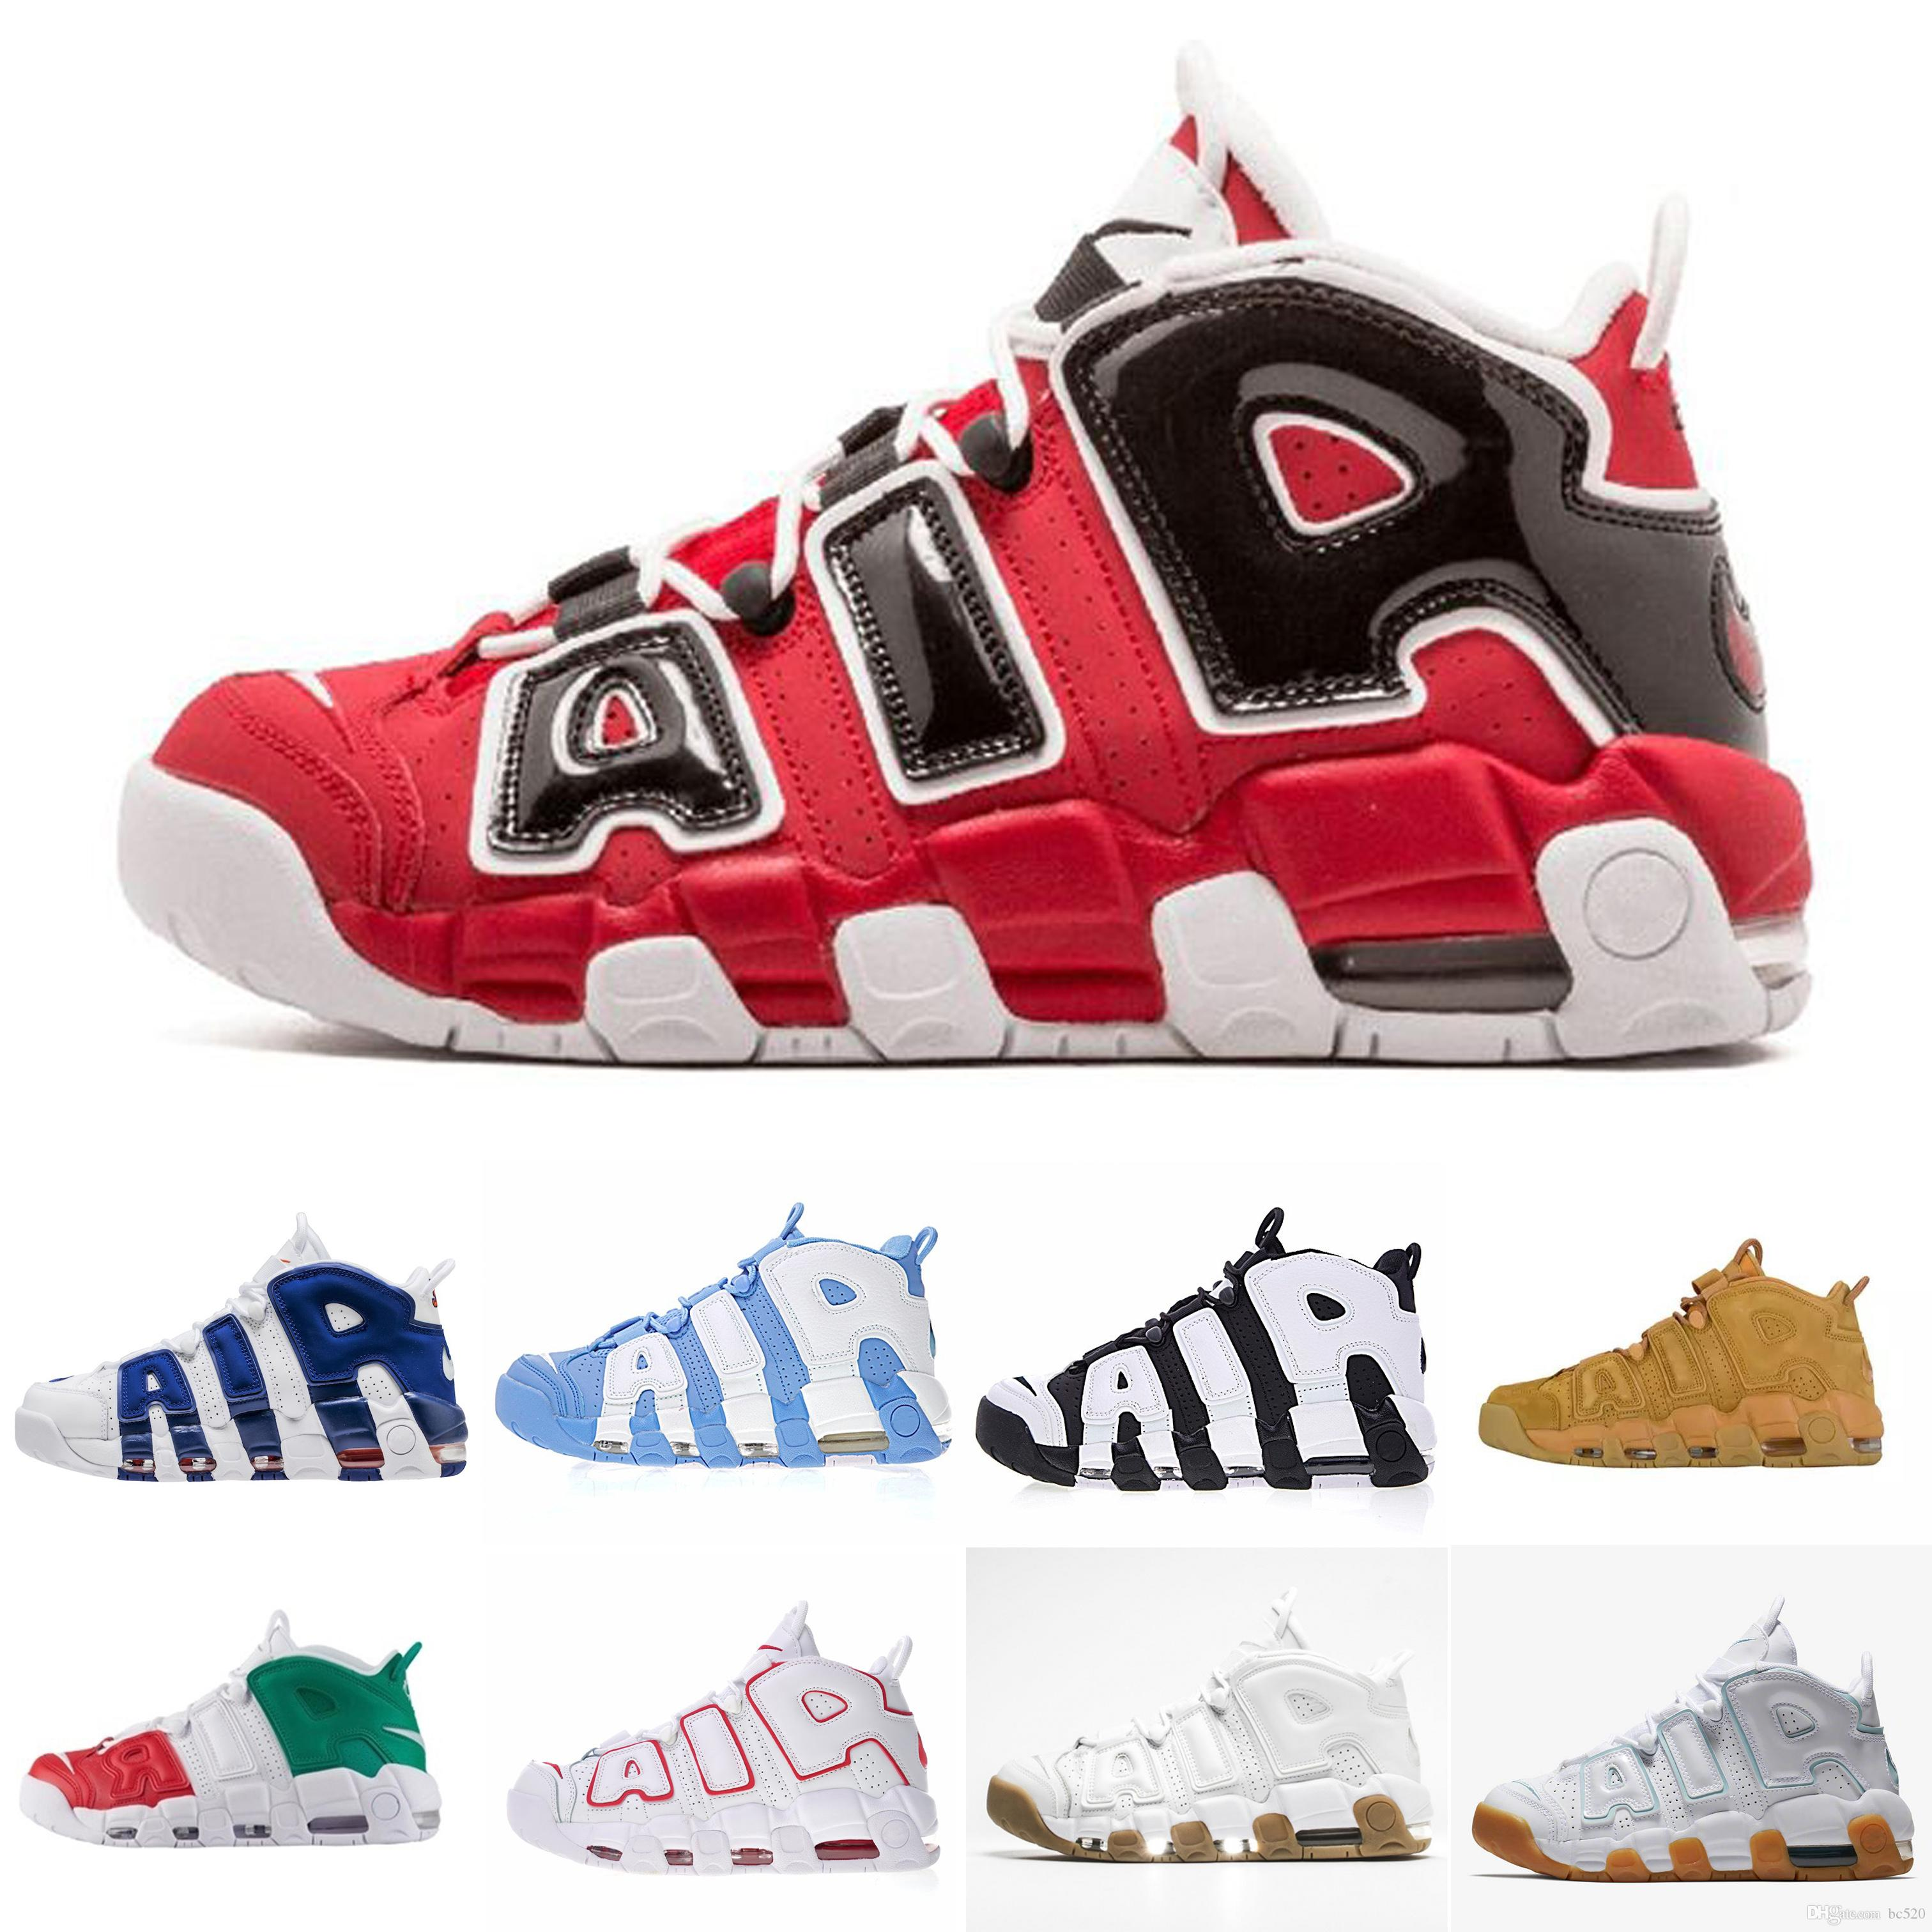 High Quality Air Cushion Uptempo Basketball Shoes For Men Women 96 QS Olympic Varsity Maroon 3M Scottie Pippen Sports Sneakers Size 36-45